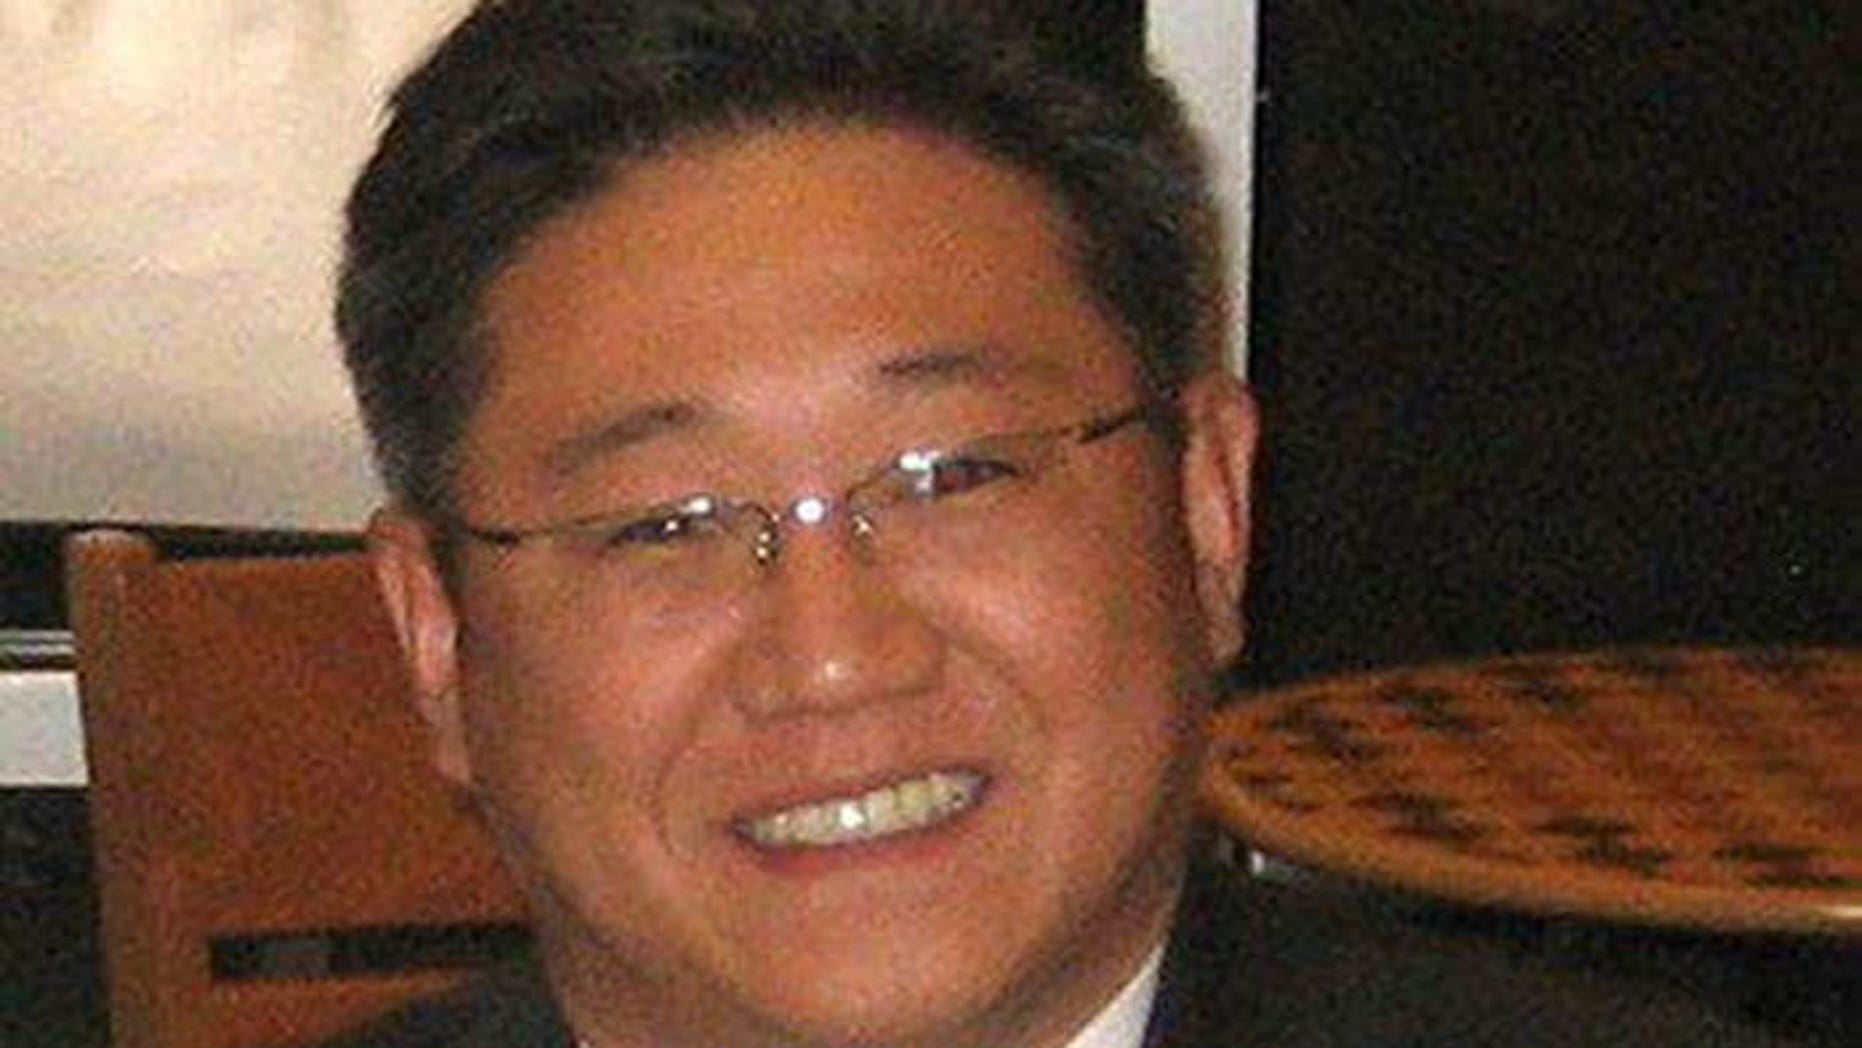 """Kenneth Bae, an American Christian missionary who was arrested in November 2012 for leading a tour group in North Korea, is among those to be tried for """"hostile acts"""" against the country."""